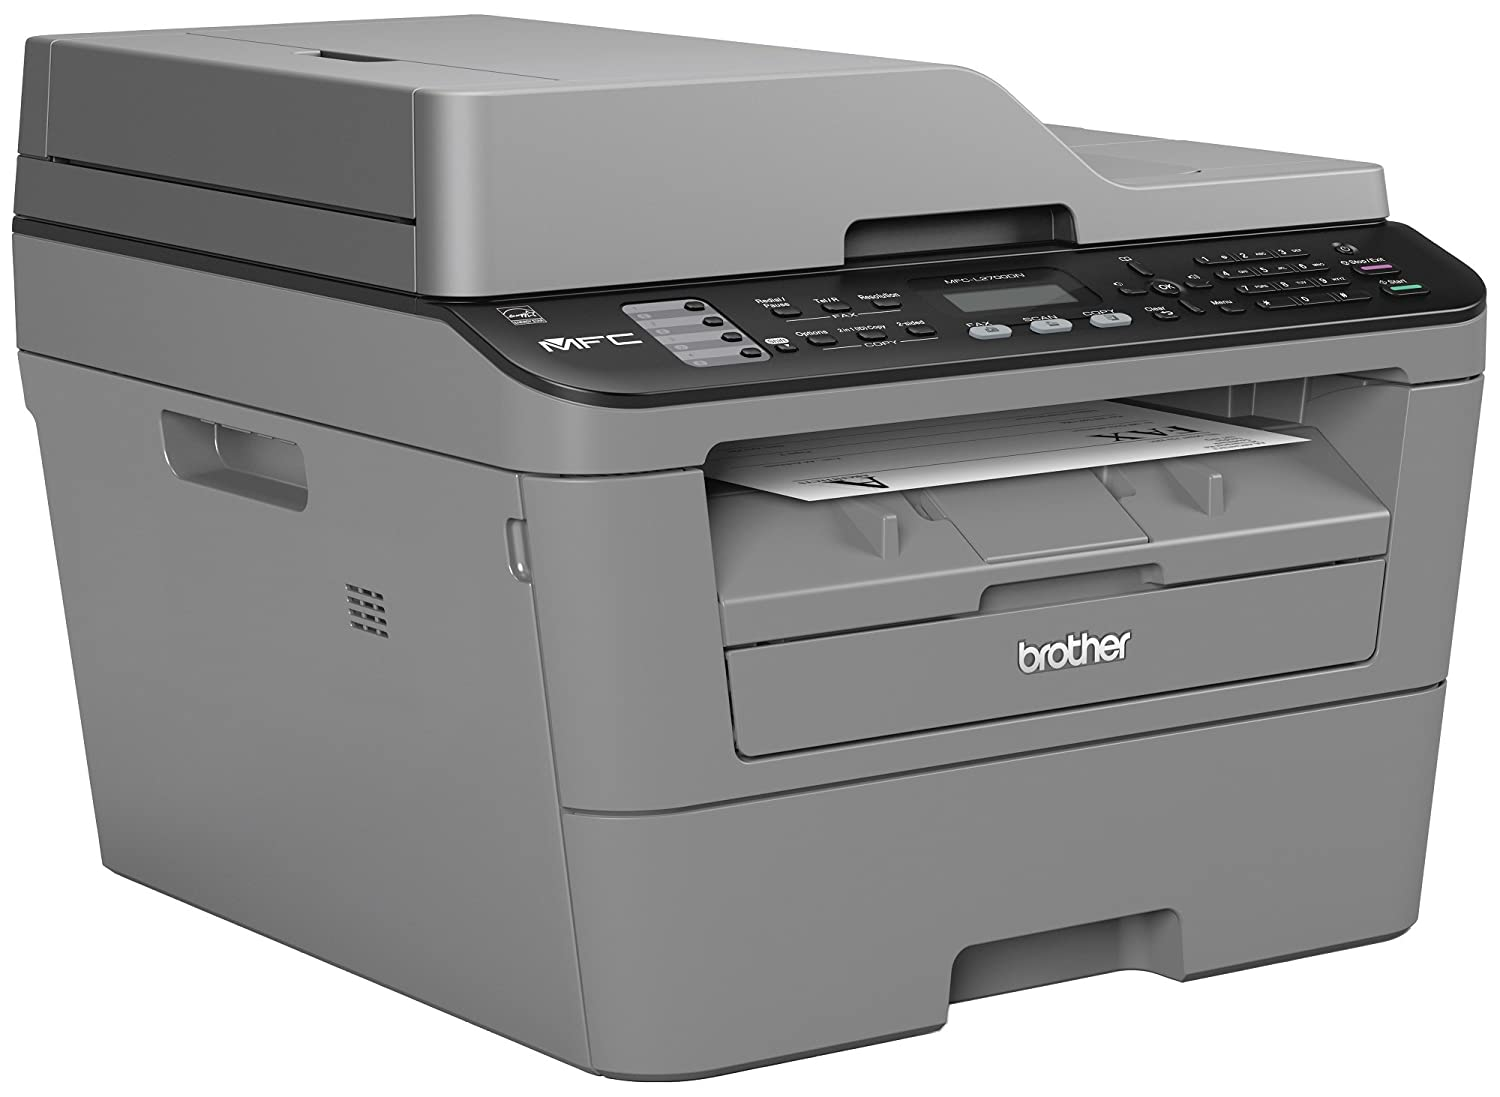 BROTHER MFC-L2700DN PRINTER DRIVERS FOR WINDOWS DOWNLOAD